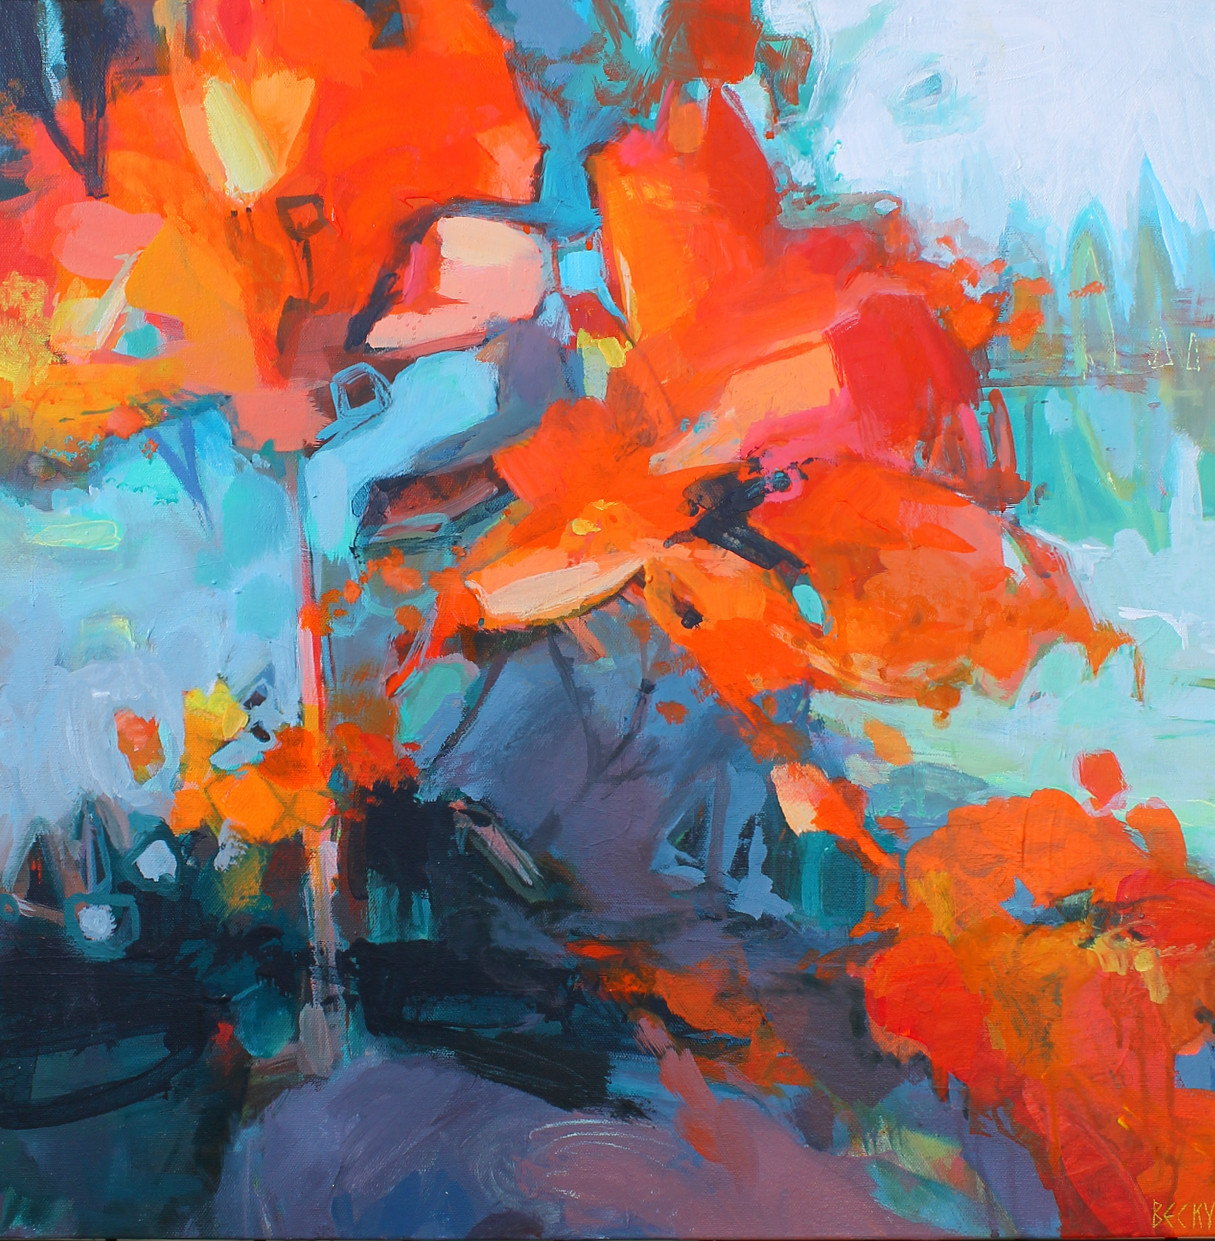 Where are all the Flowers?, acrylic flower painting by Becky Holuk | Effusion Art Gallery + Glass Studio, Invermere BC